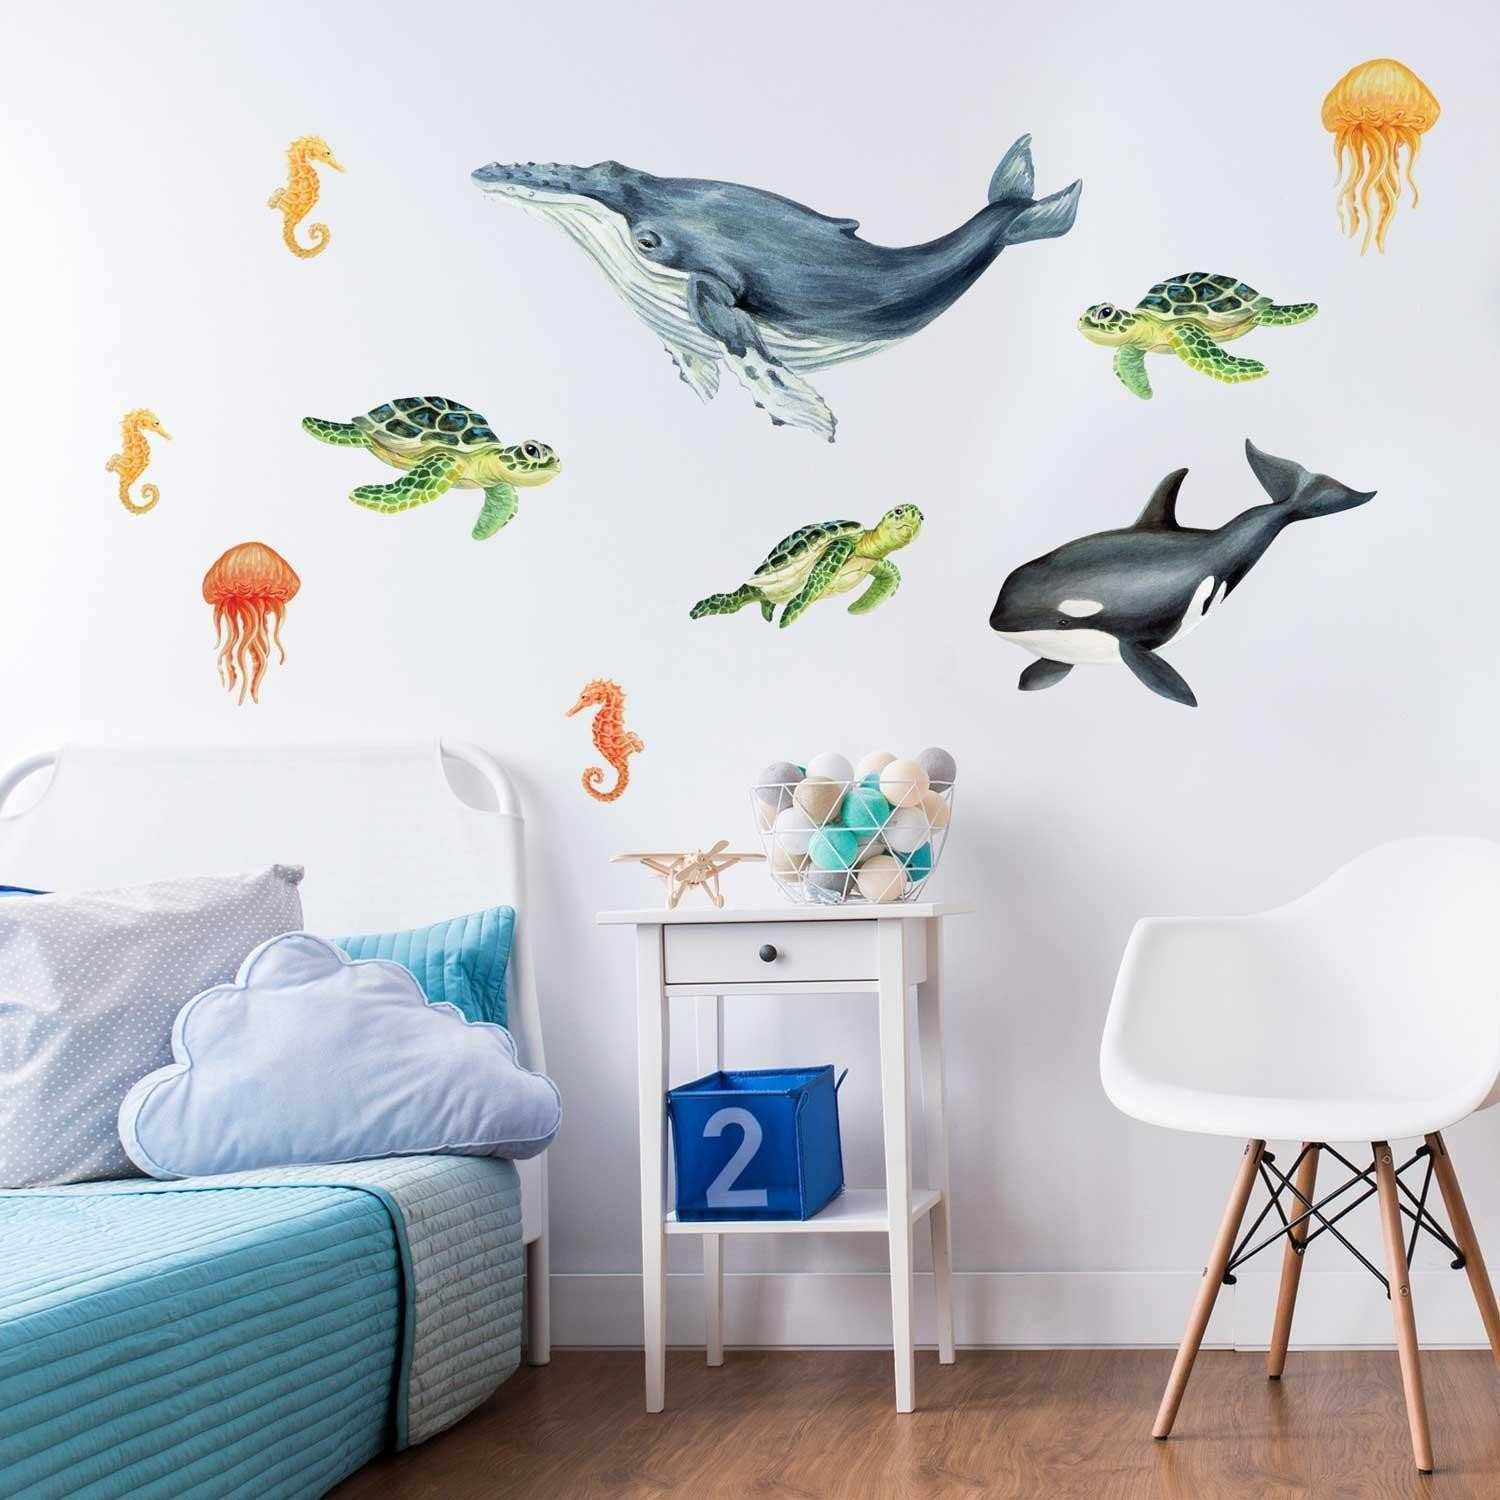 Music Bedroom Ideas Unique 39 Elegant Beach Wall Art Decor